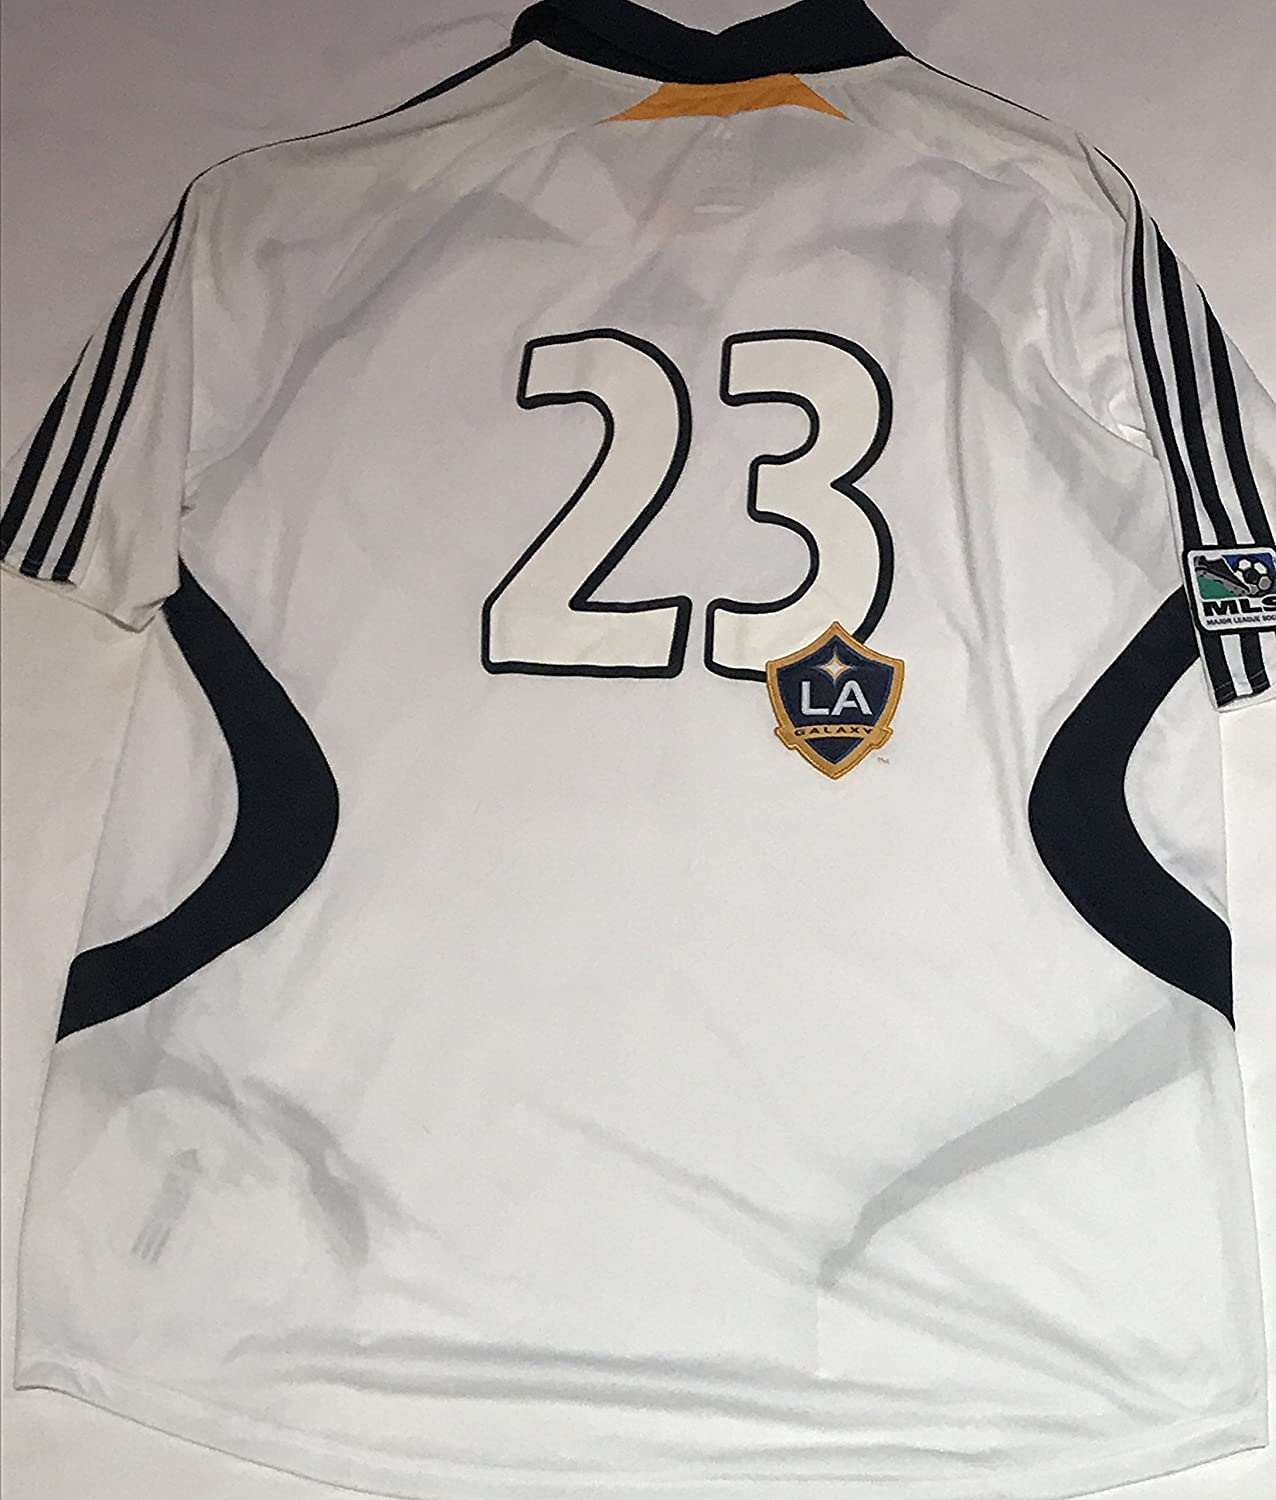 cc2285910ad Amazon.com : adidas Men's MLS Los Angeles Galaxy #23 Home Replica Jersey  (Large) : Sports & Outdoors